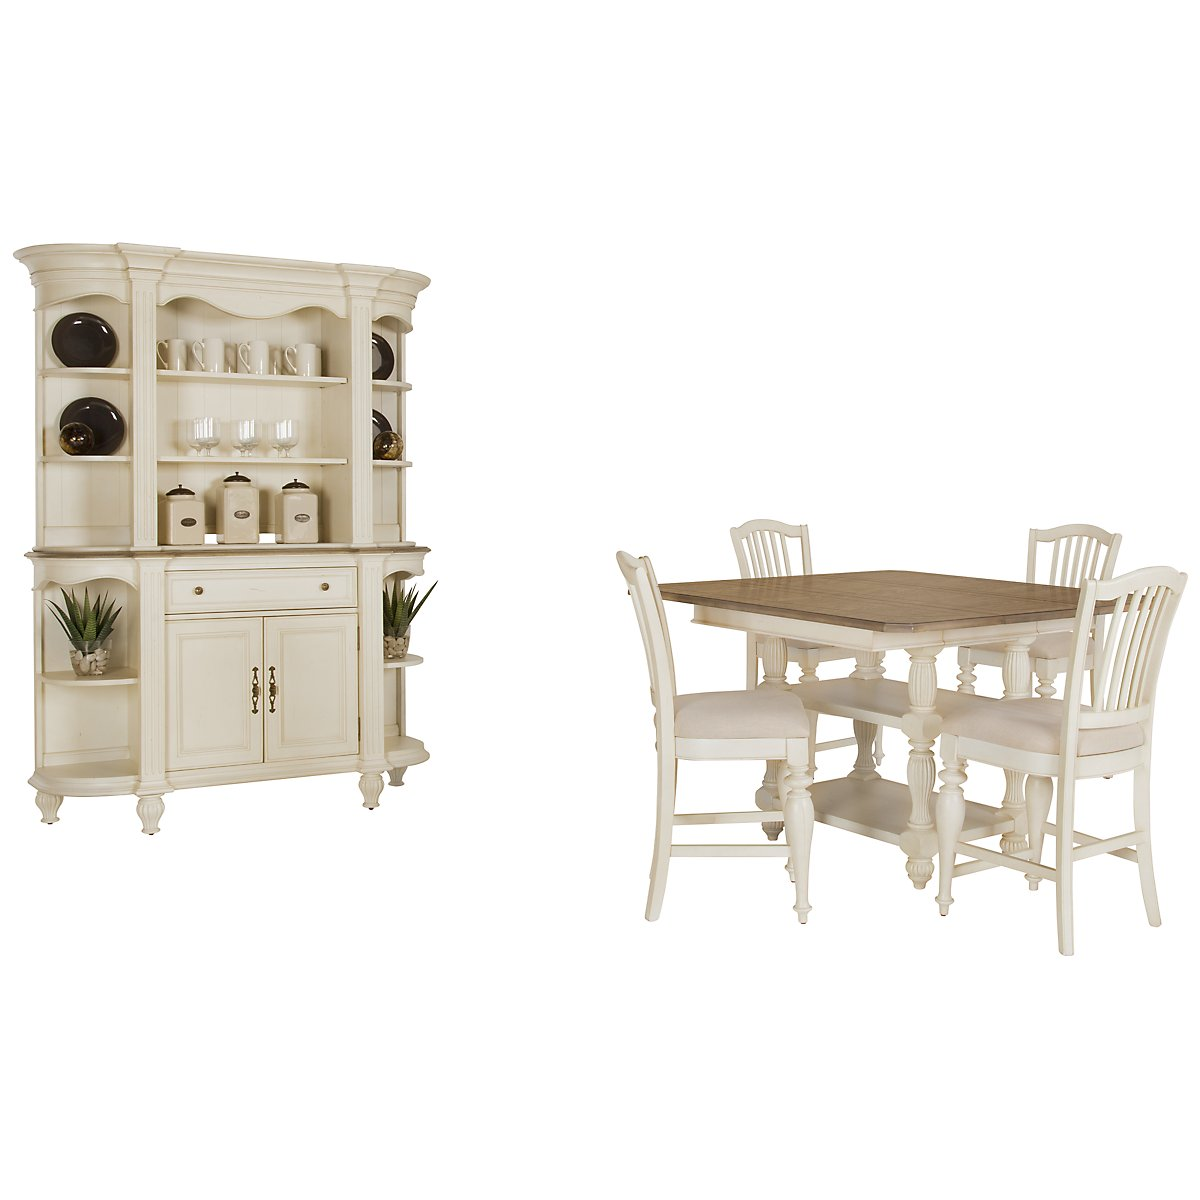 City Furniture: Coventry Two-Tone China Cabinet